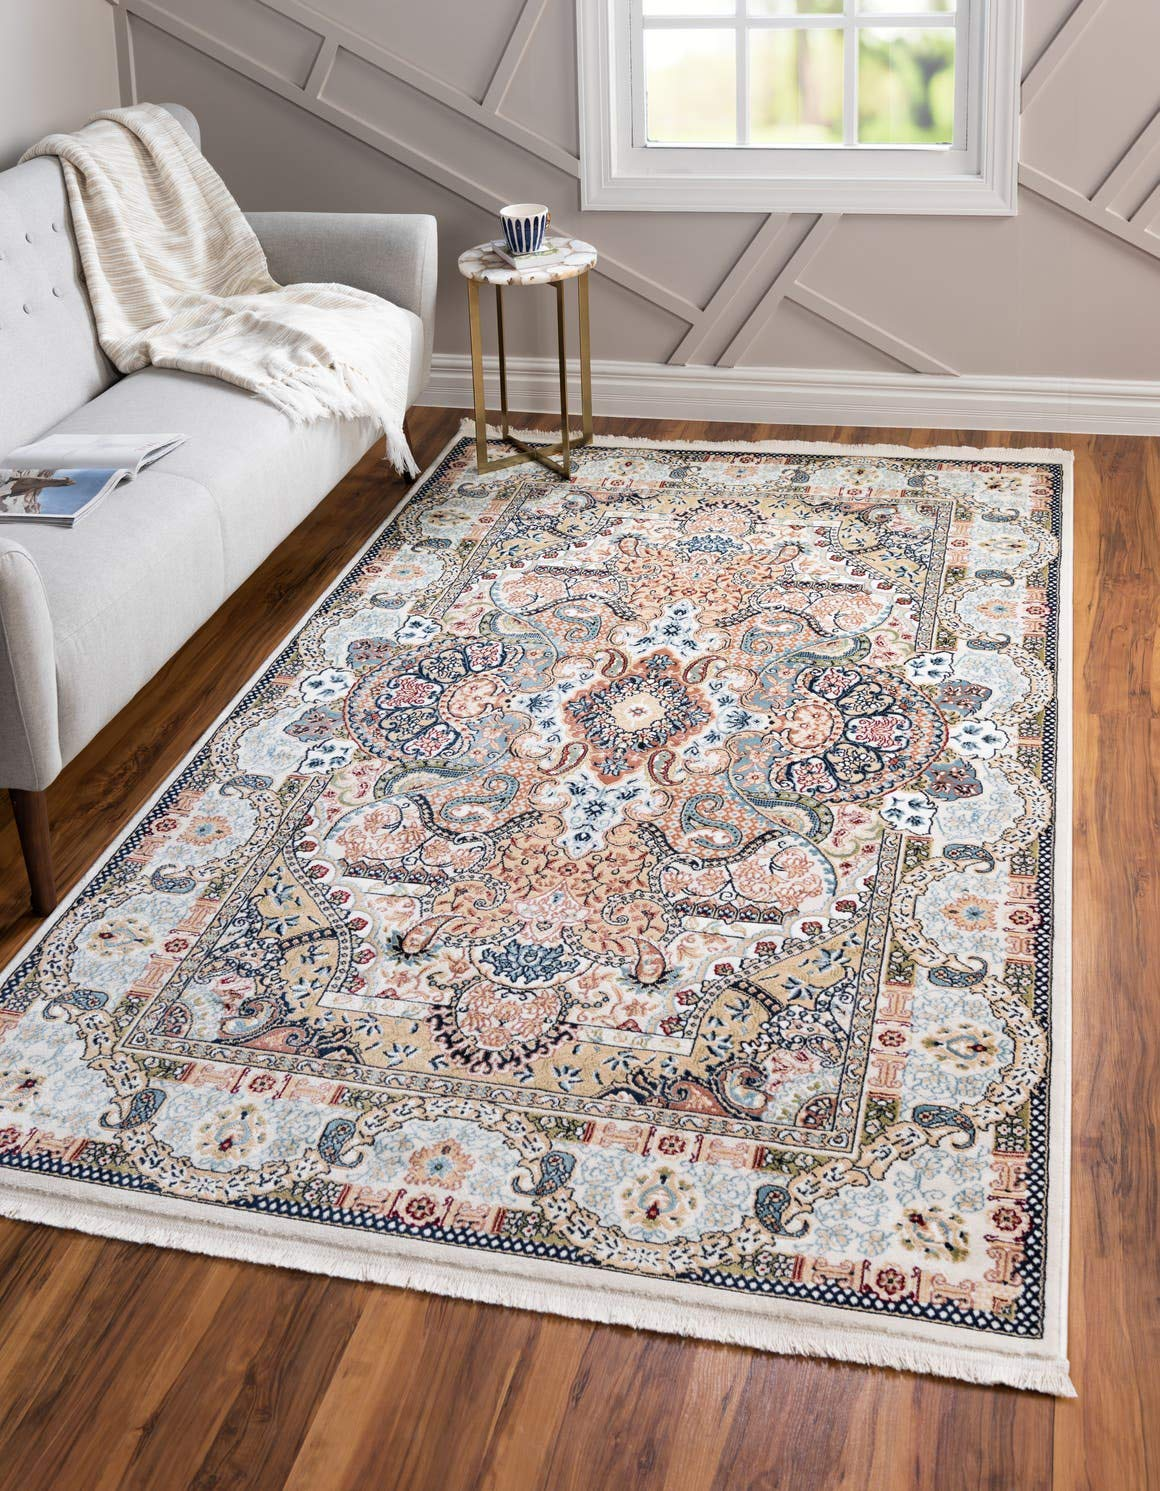 Unique Loom Narenj Collection Classic Traditional Medallion Textured Ivory Area Rug 3 0 x 5 0